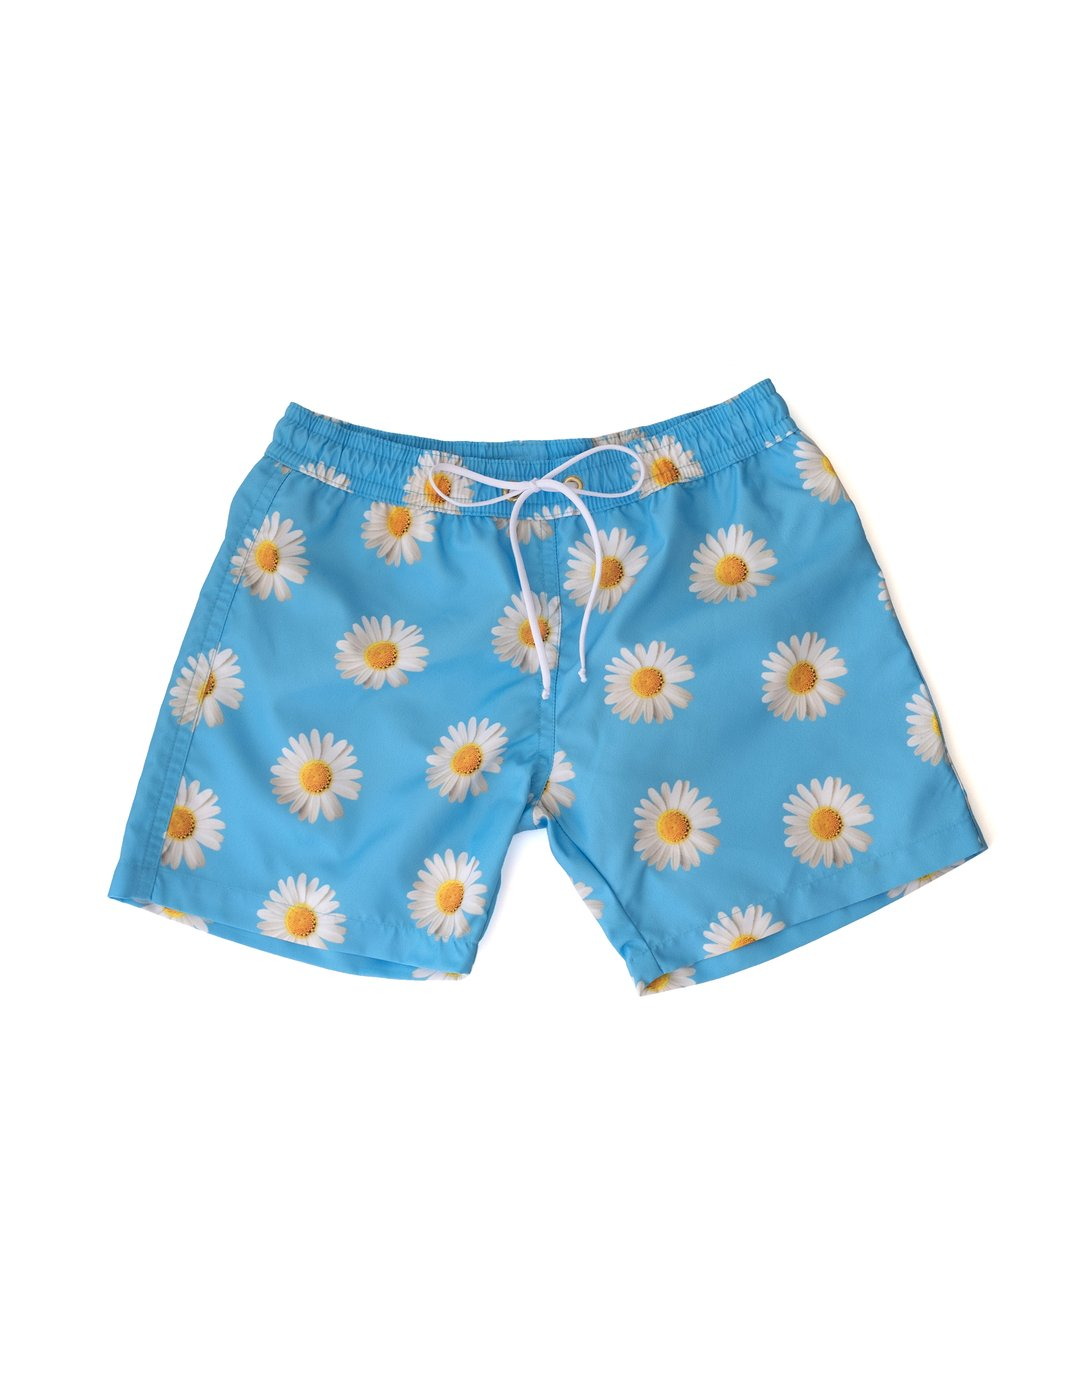 Mason Daisy Swim Trunks